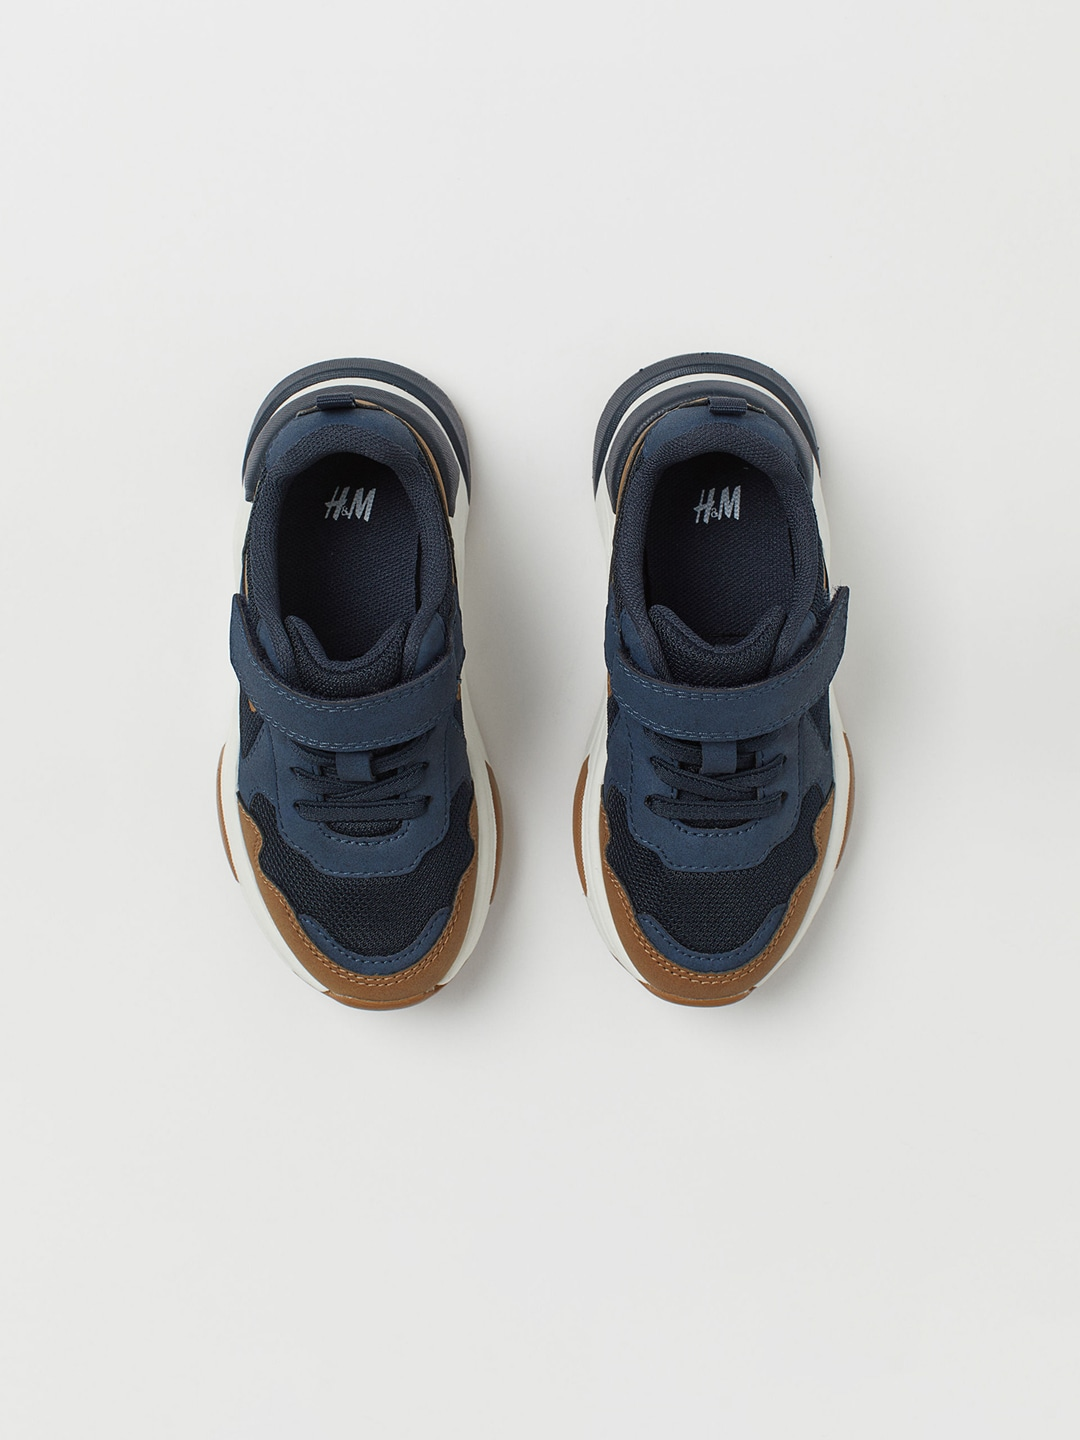 Navy Blue & Brown Colourblocked Trainers